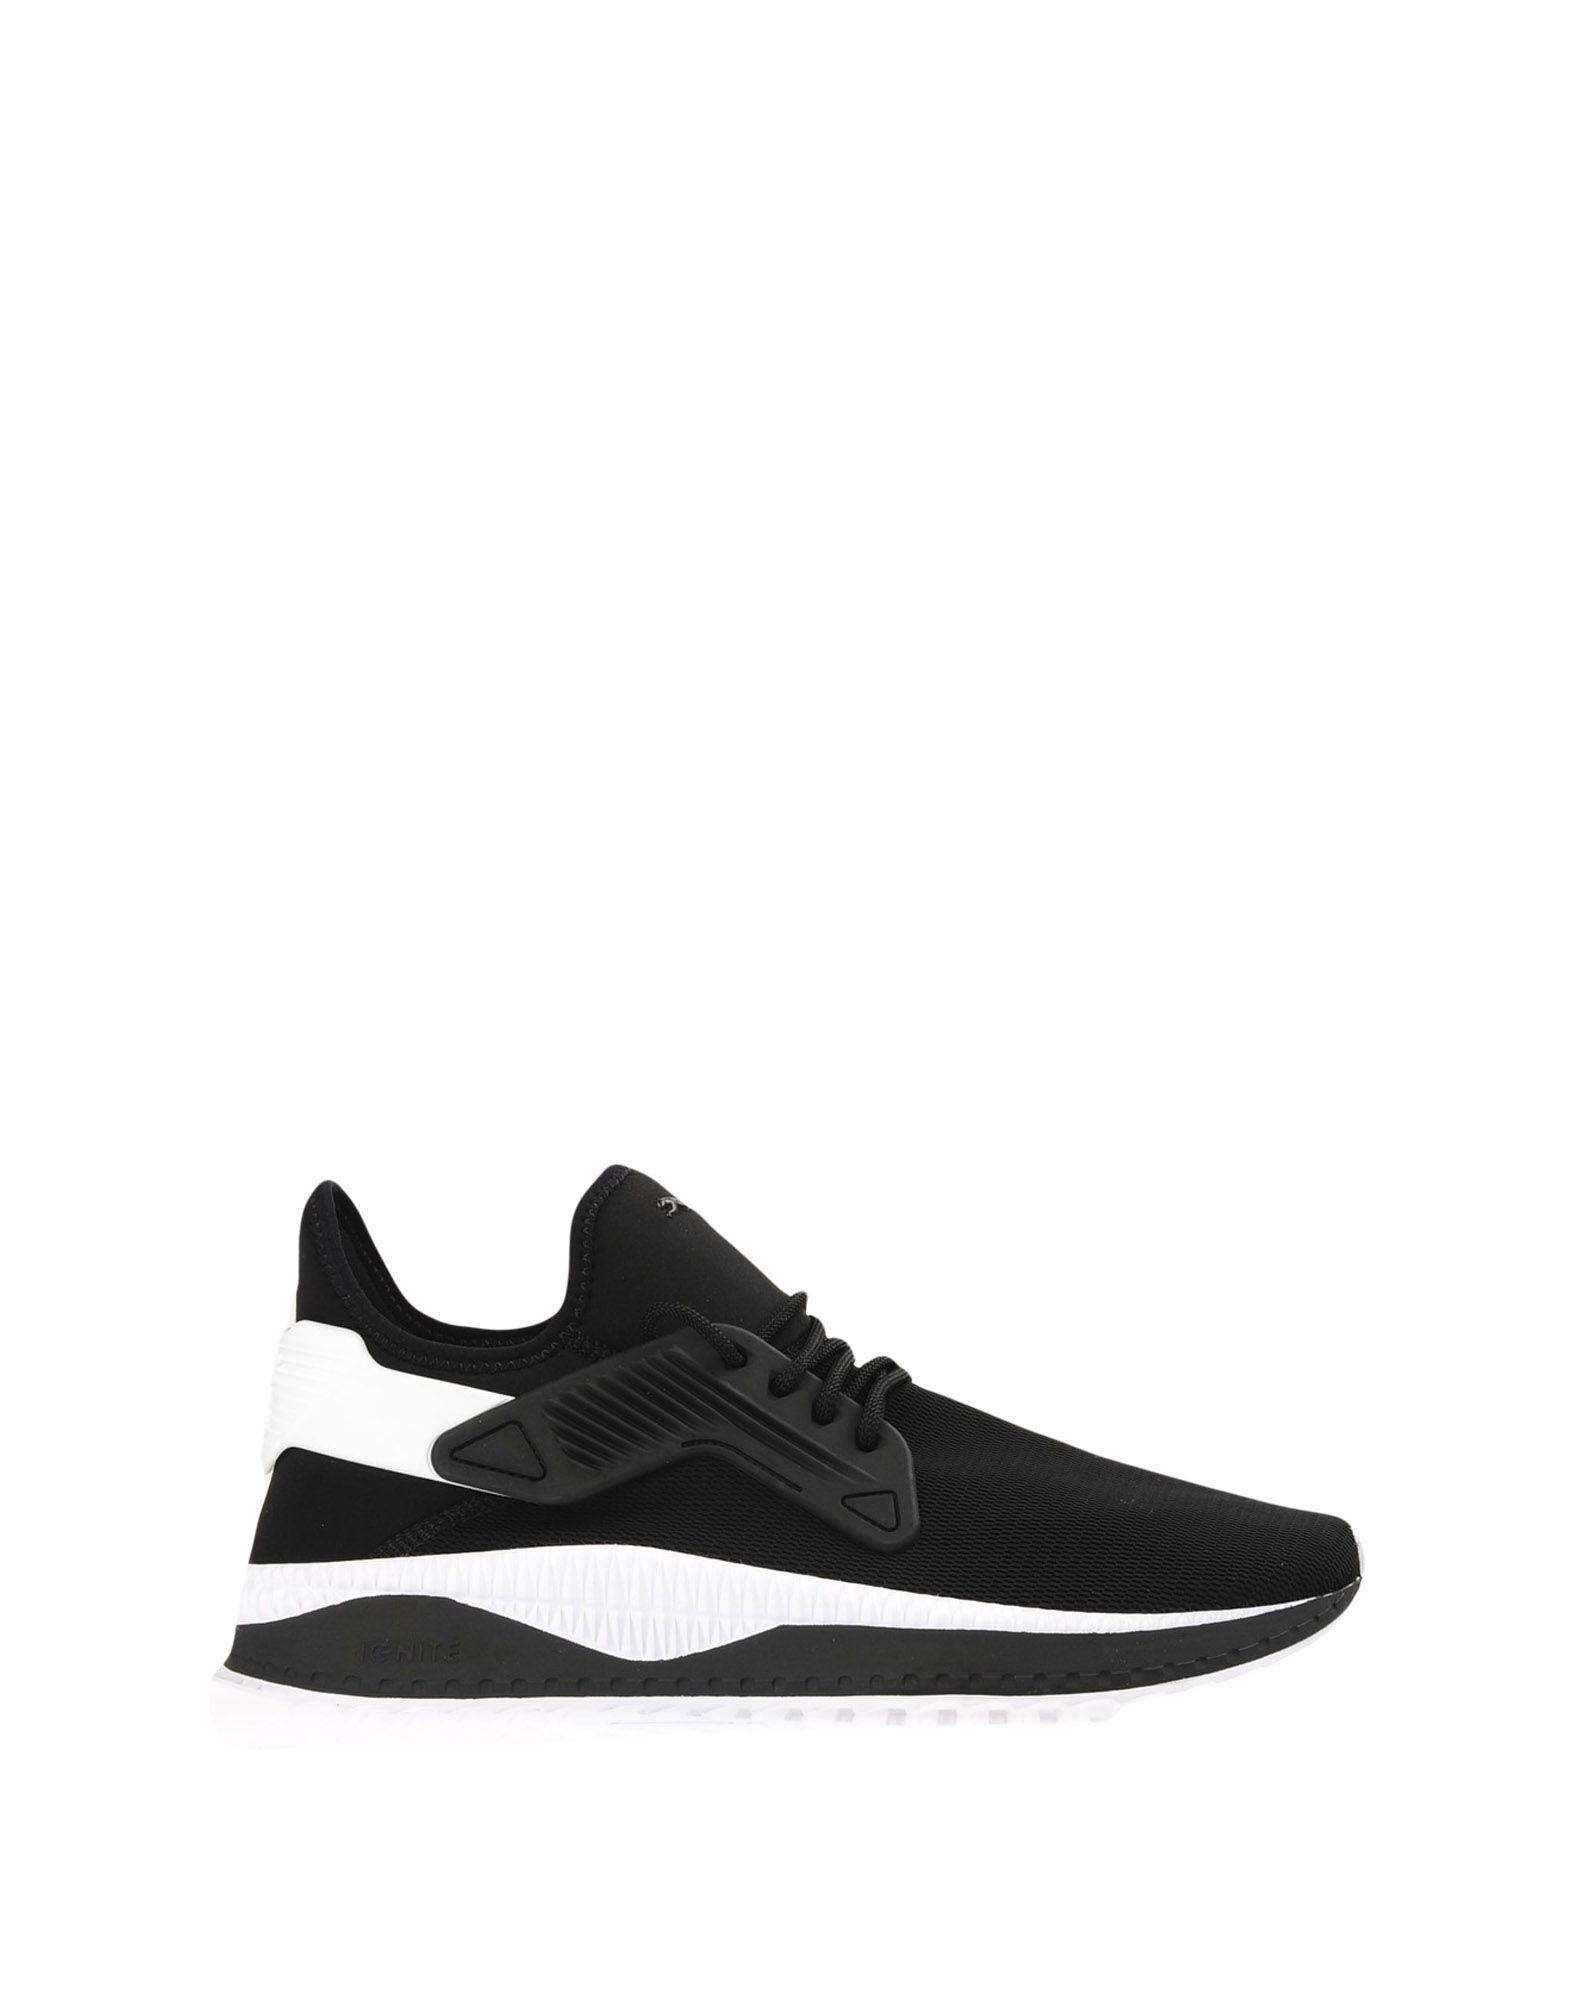 Sneakers Puma Tsugi Cage - Homme - Sneakers Puma sur